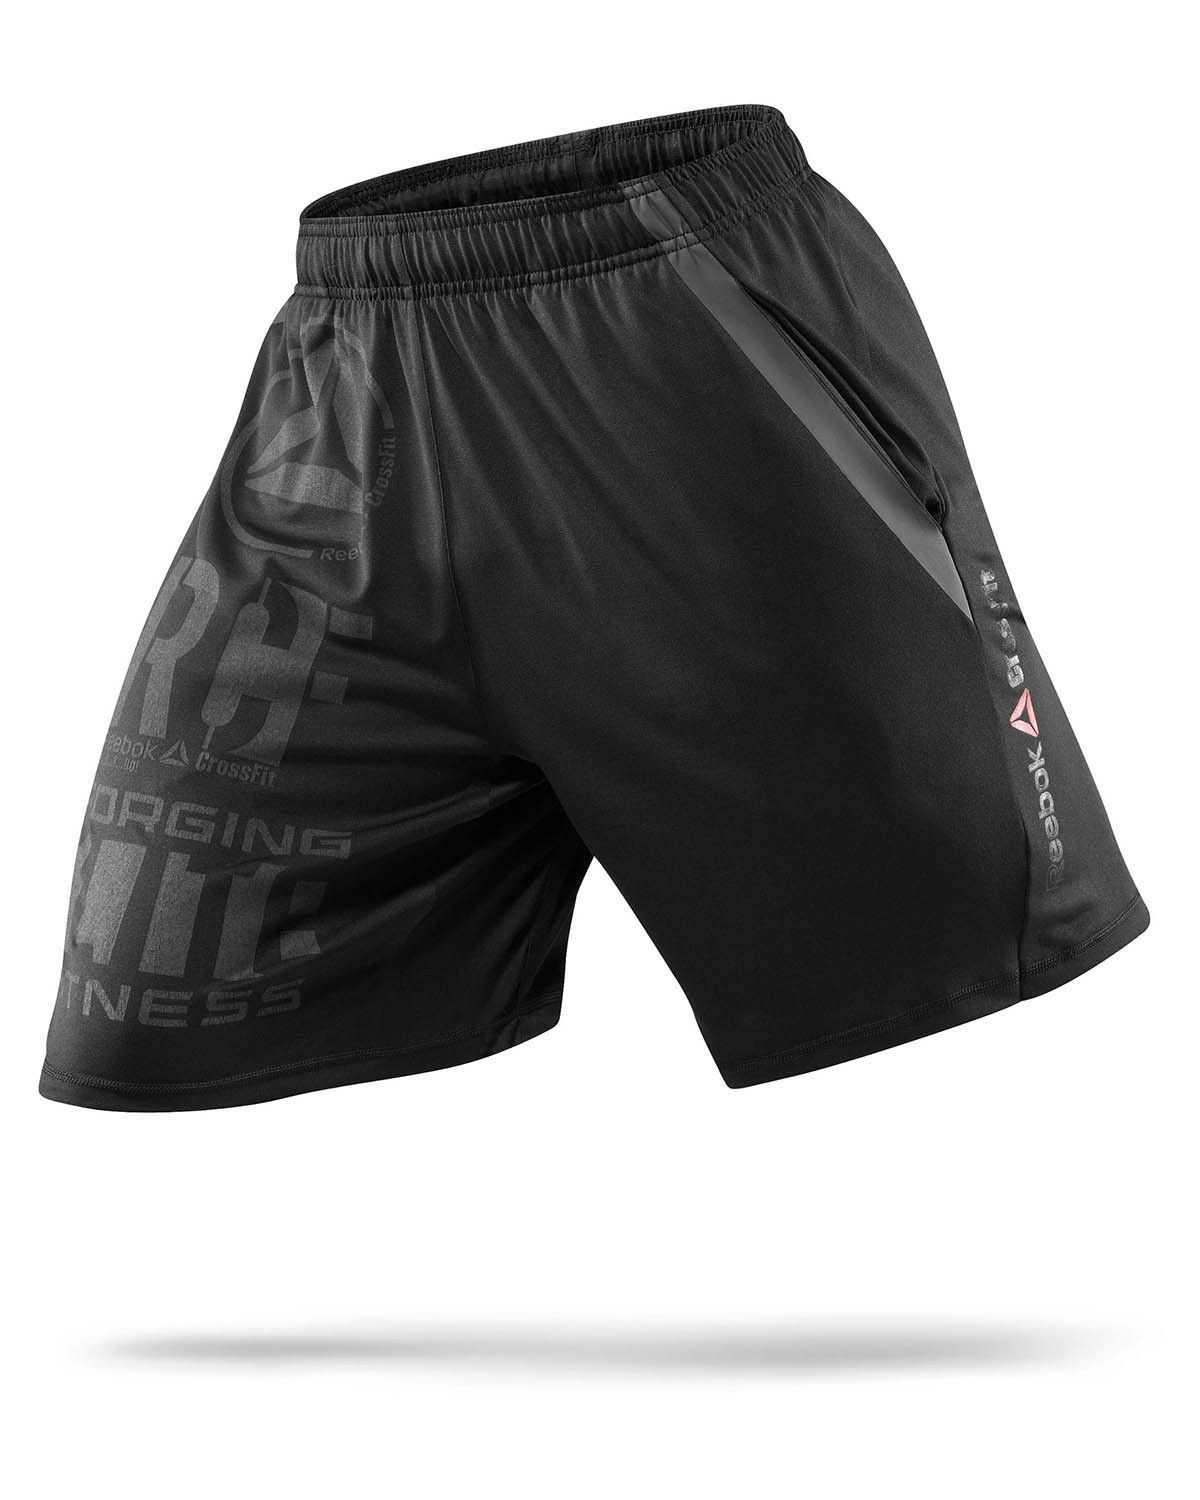 wholesale dealer 0ef18 7bcea CrossFit HQ Store- Forging Elite Fitness Knit Short - Pants   Shorts - Men  Buy Authentic CrossFit T-Shirts, CrossFit Gear, Accessories and Clothing